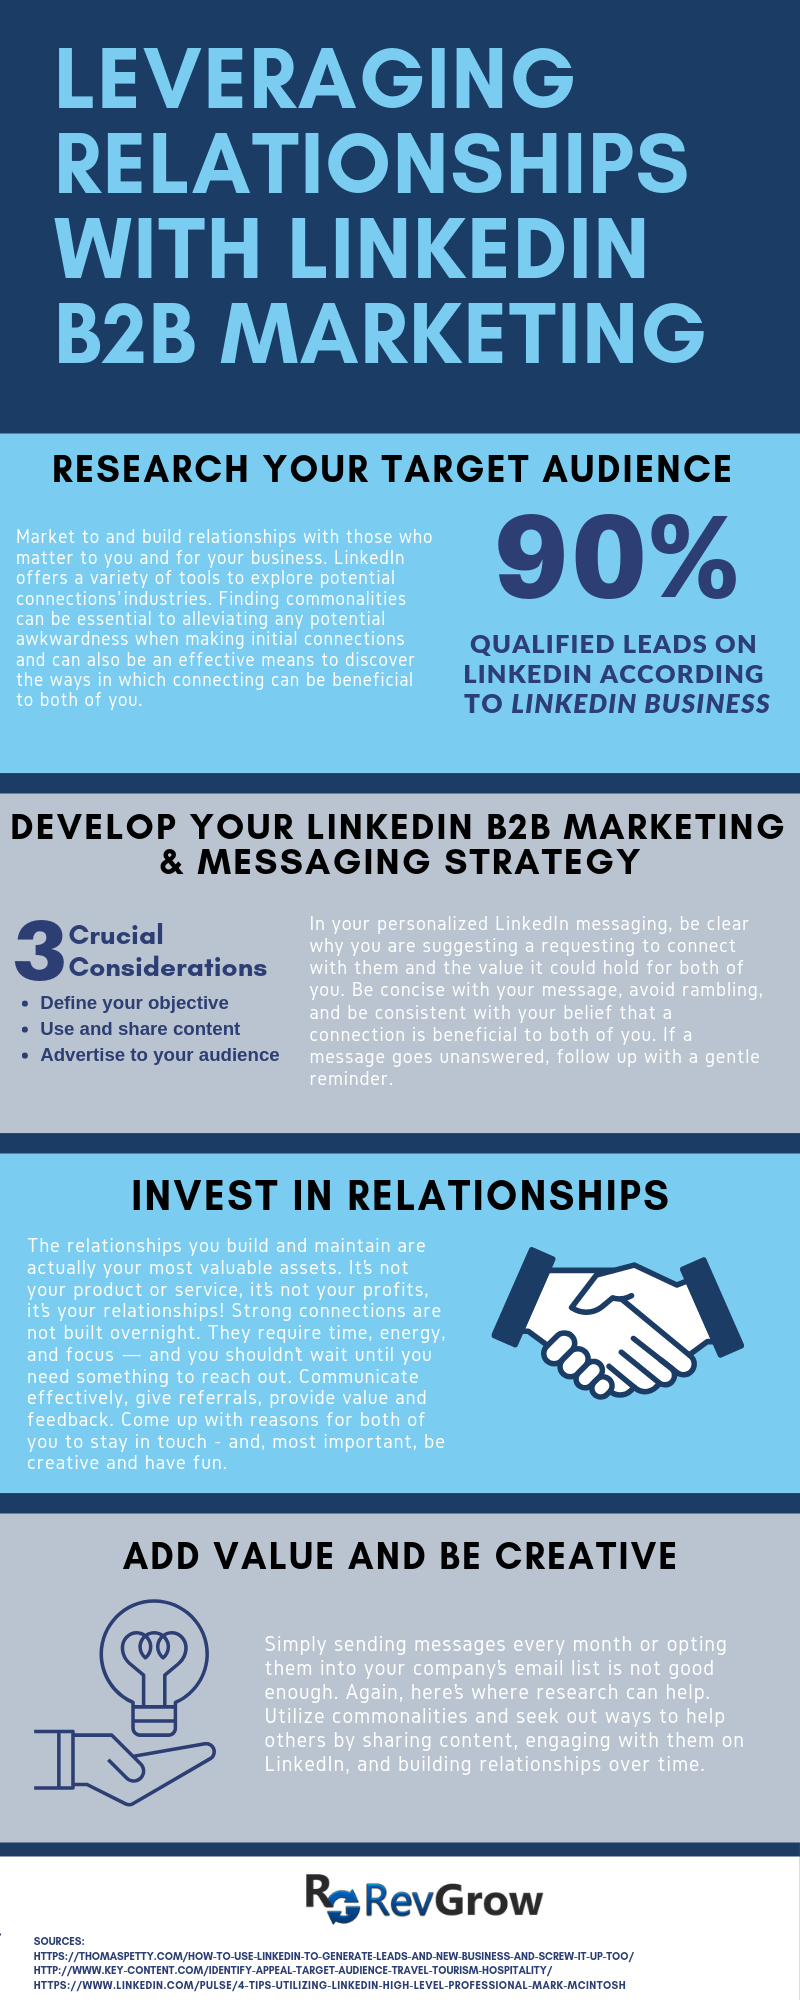 4 Tips for Leveraging B2B Relationships with LinkedIn Marketing